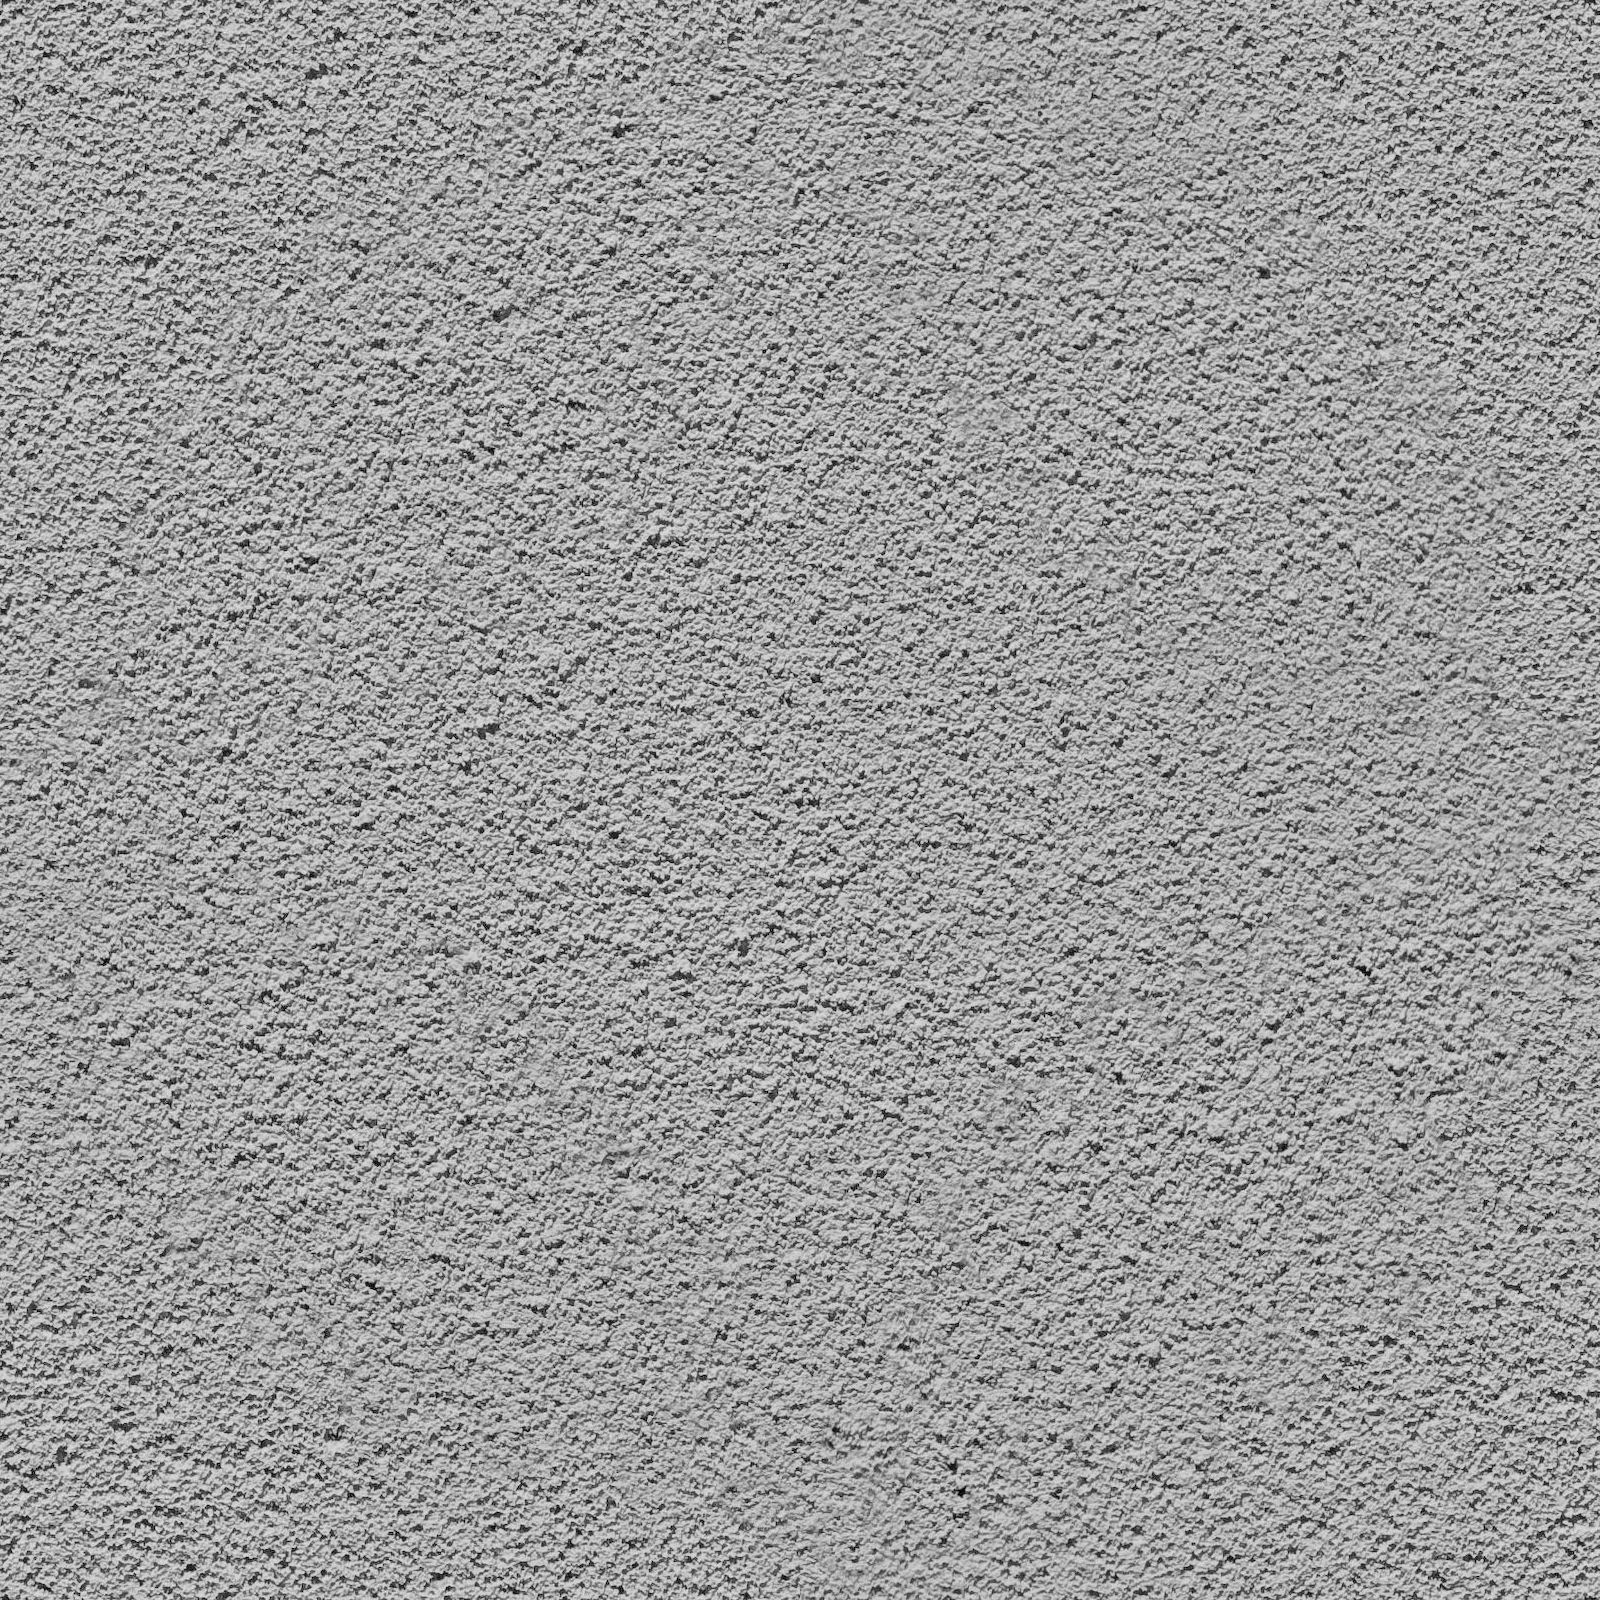 High Resolution Seamless Textures October